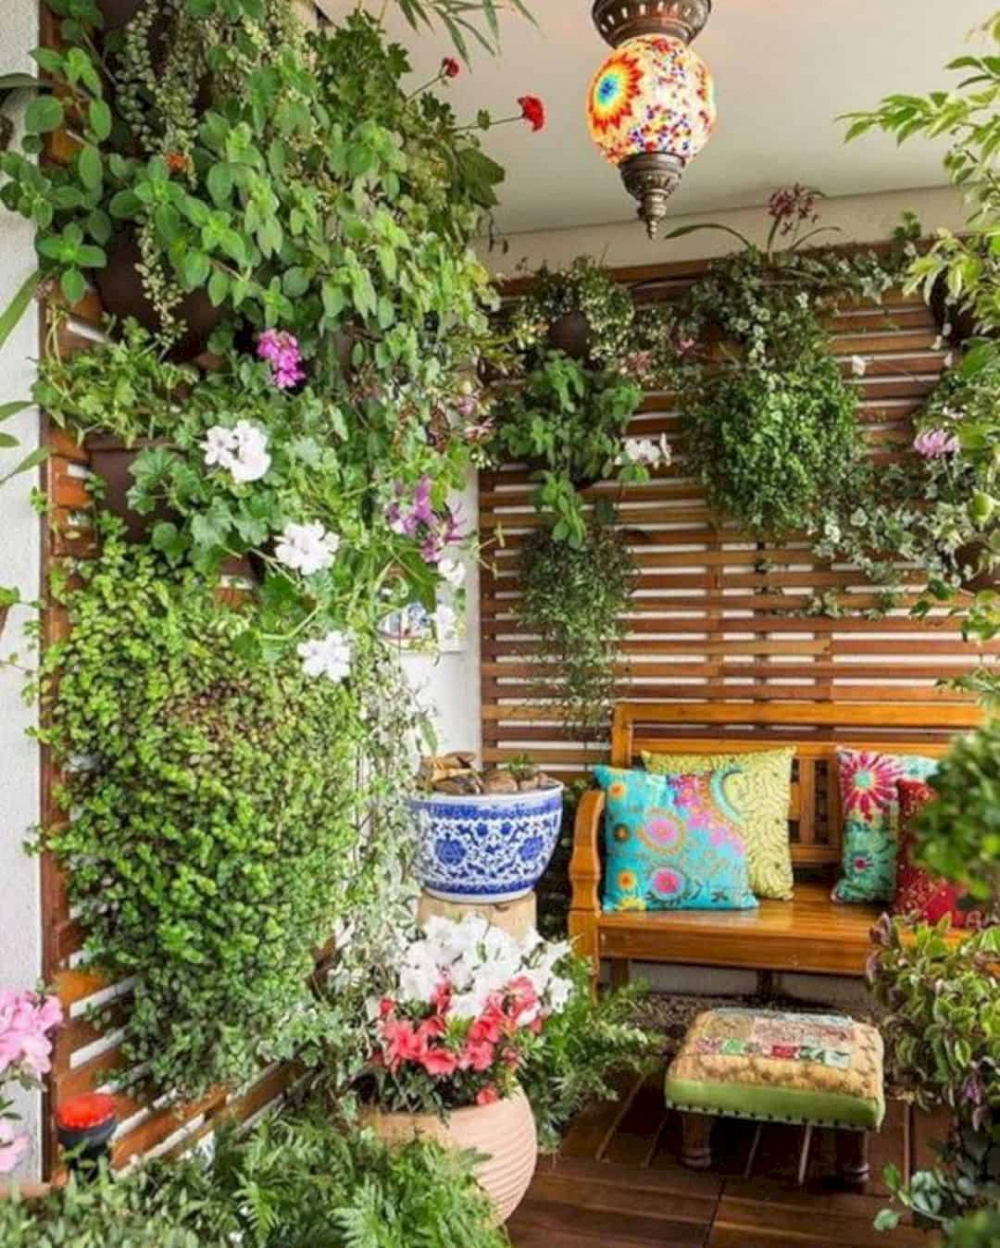 23 Comfy Furniture Ideas to Beautify Your Balcony  Futurist